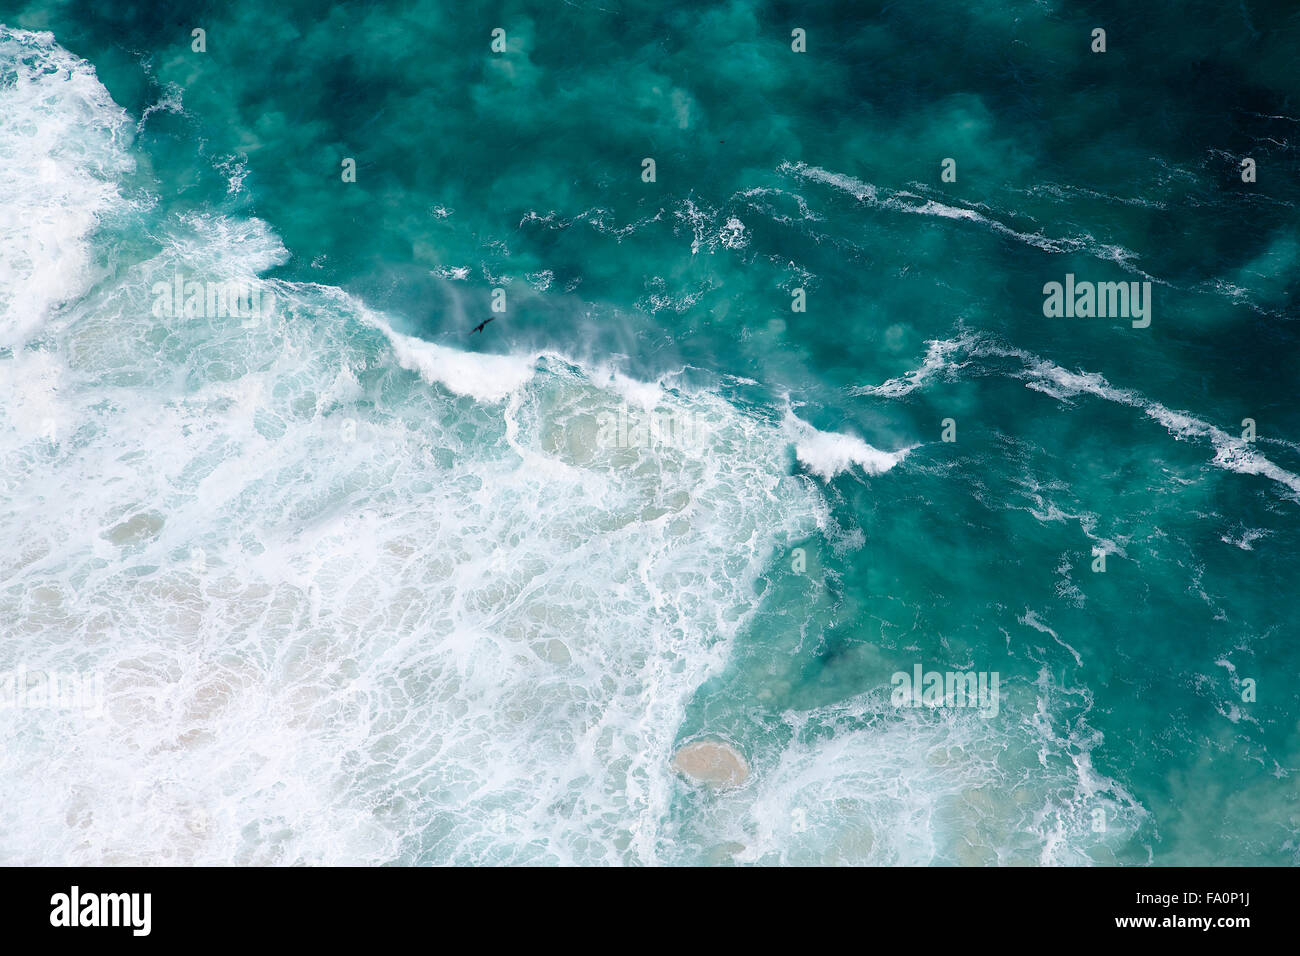 An aerial view of the pattern formed by the waves breaking against the coast at Cape Point in South Africa - Stock Image